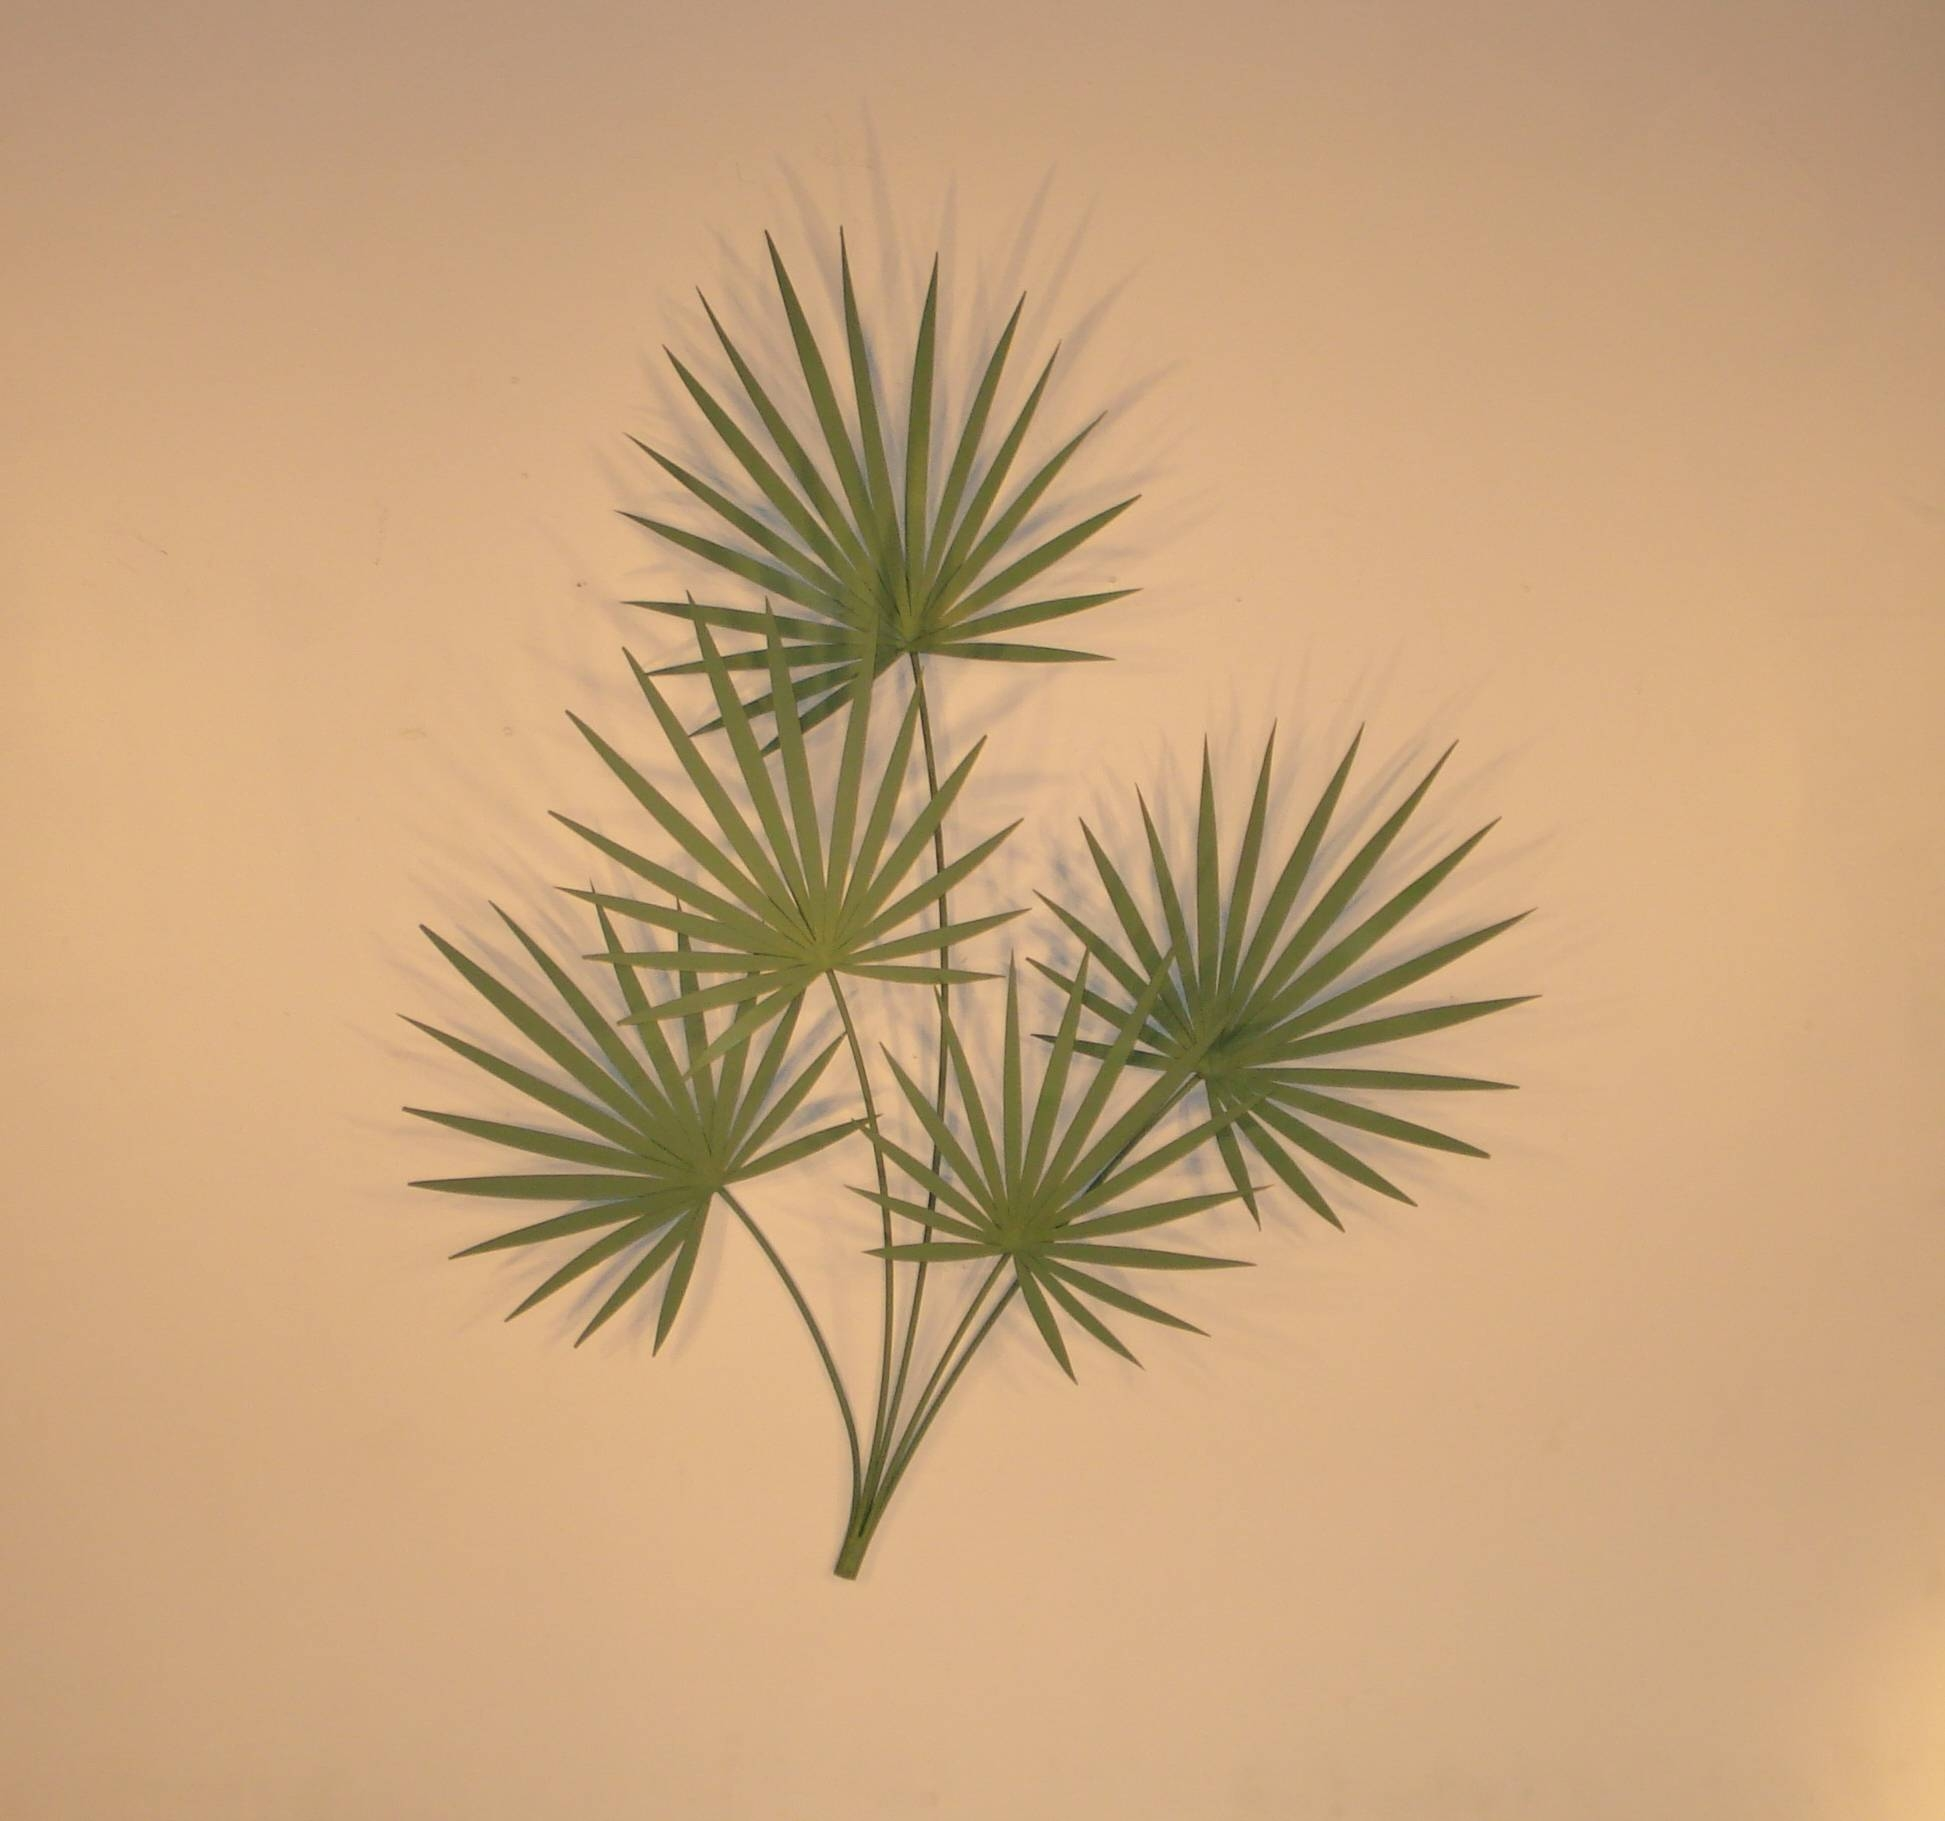 Tropical Metal Art, Wall Sculptures And Decor | Gurtan Designs Intended For Current Palm Leaf Wall Decor (View 19 of 25)